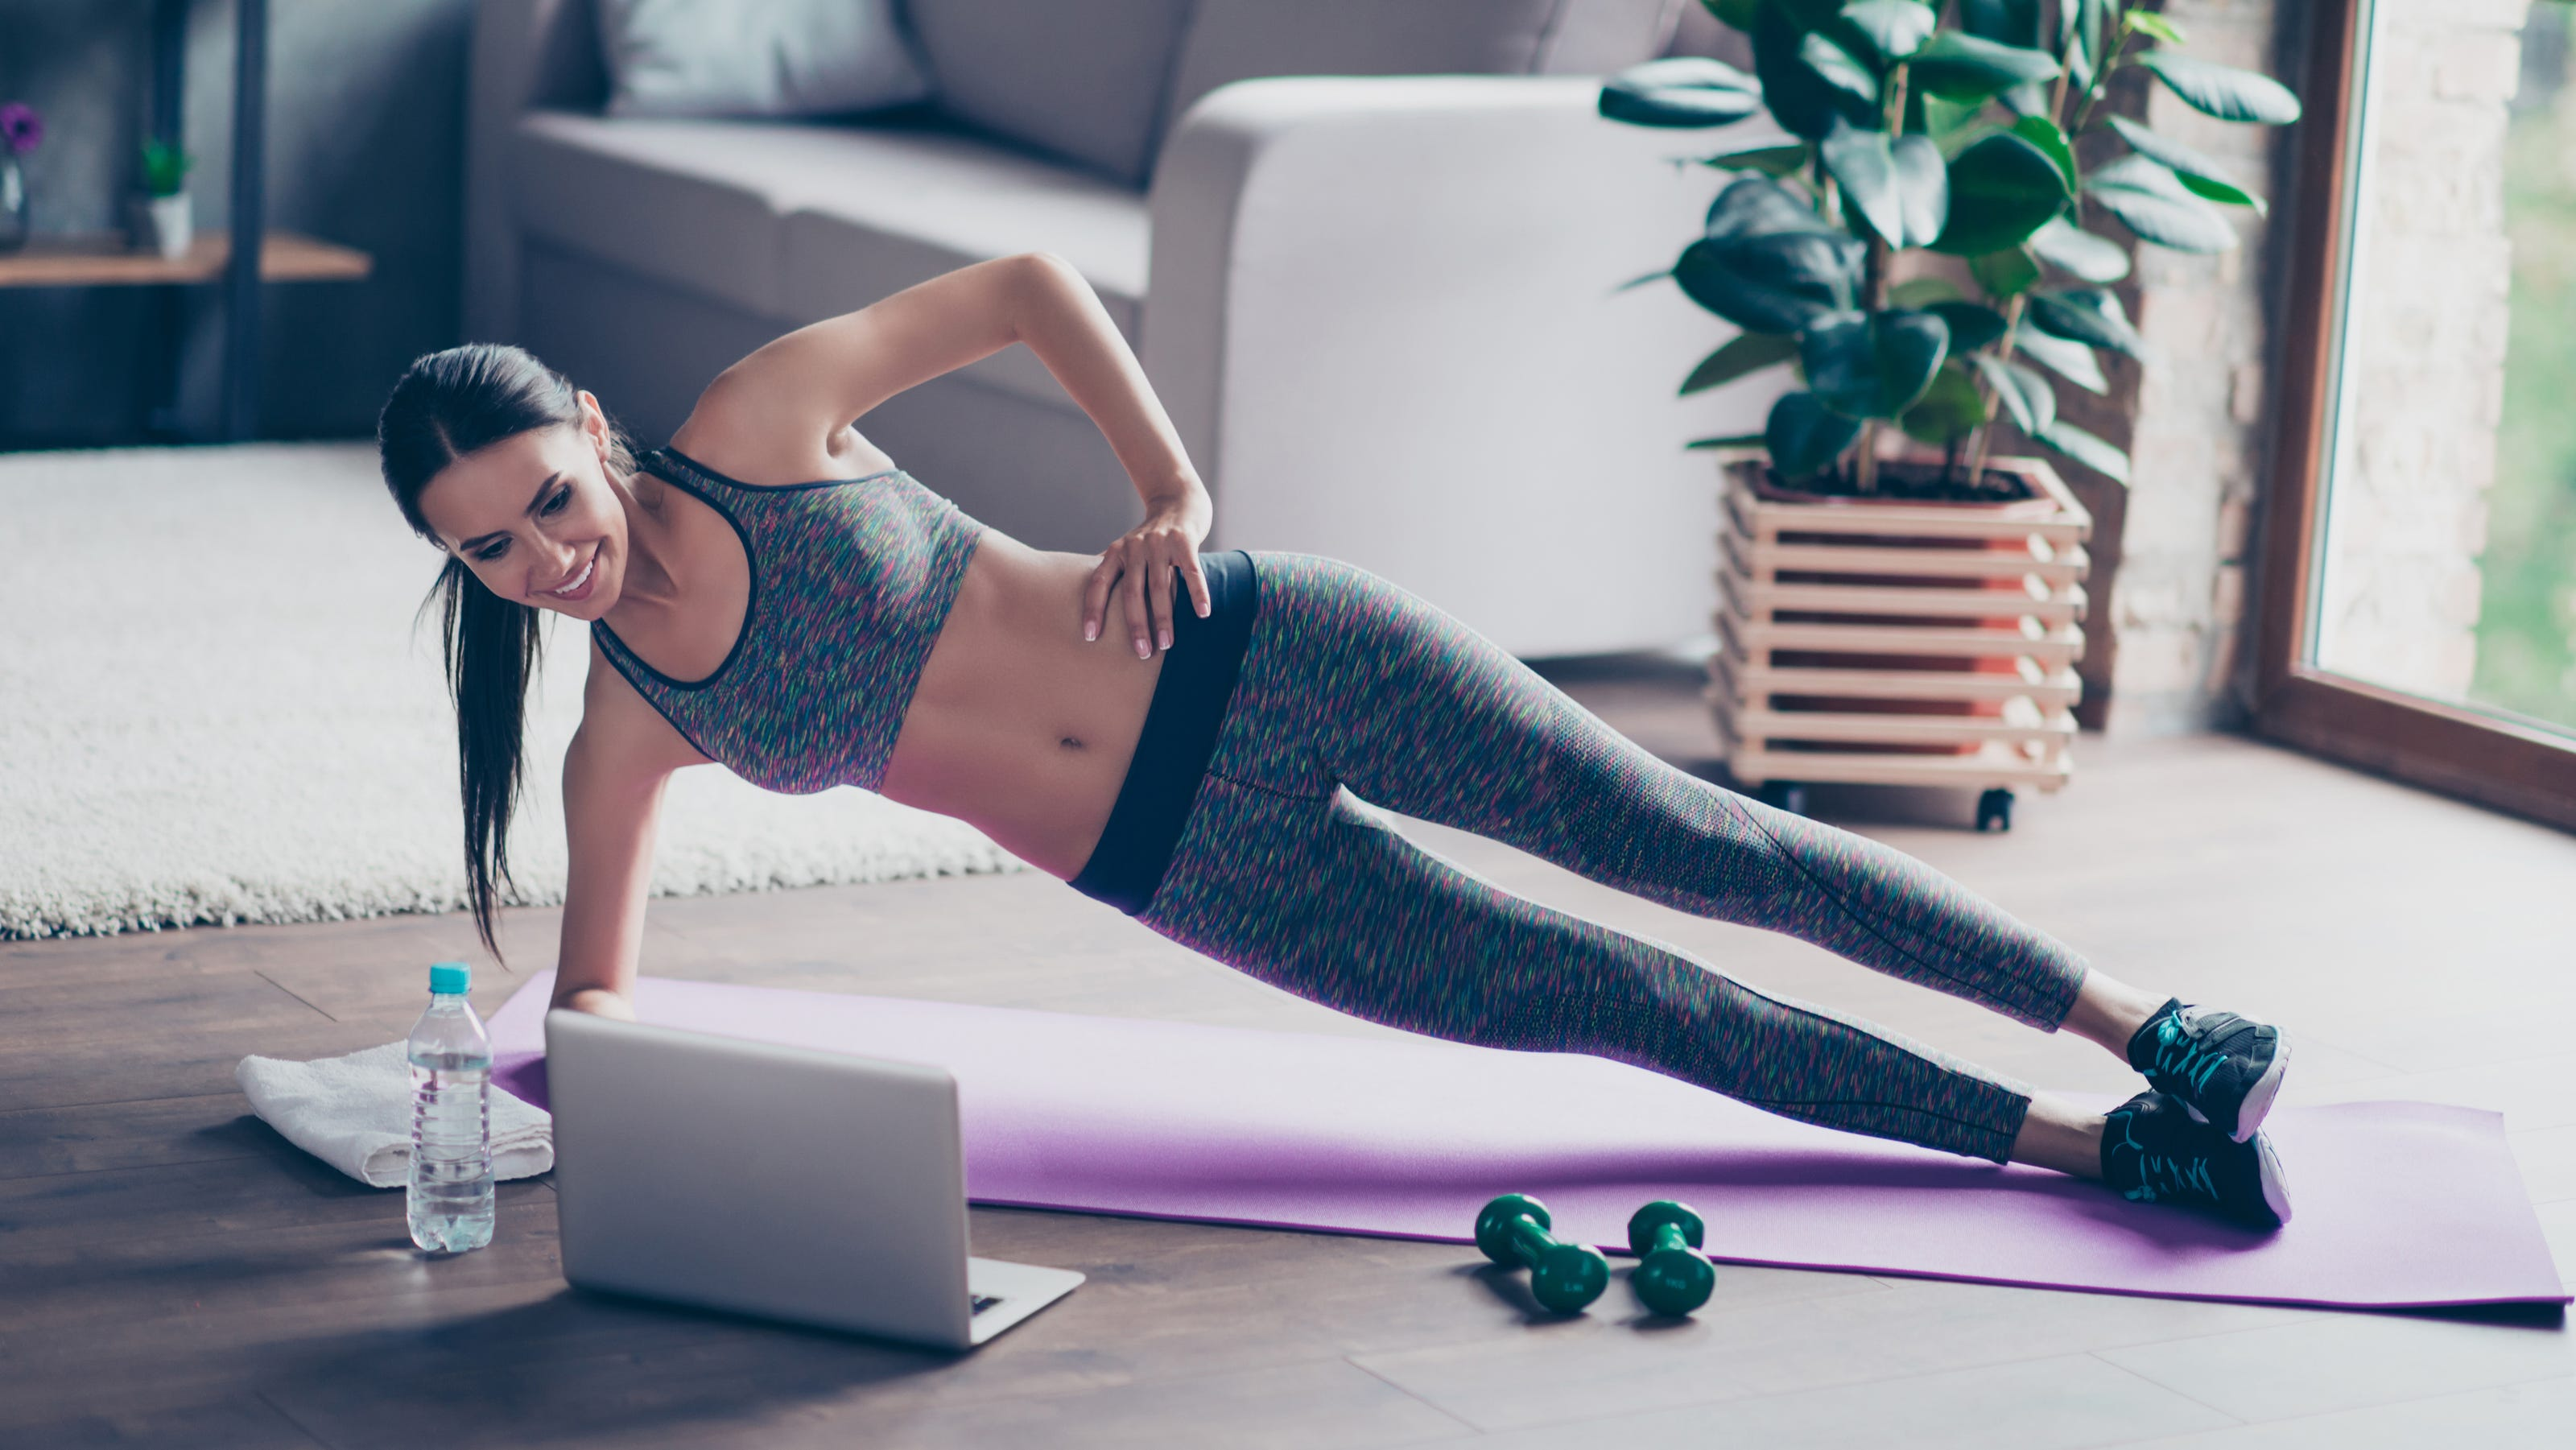 Virtual At Home Workouts Keep Gyms Connected To Clients